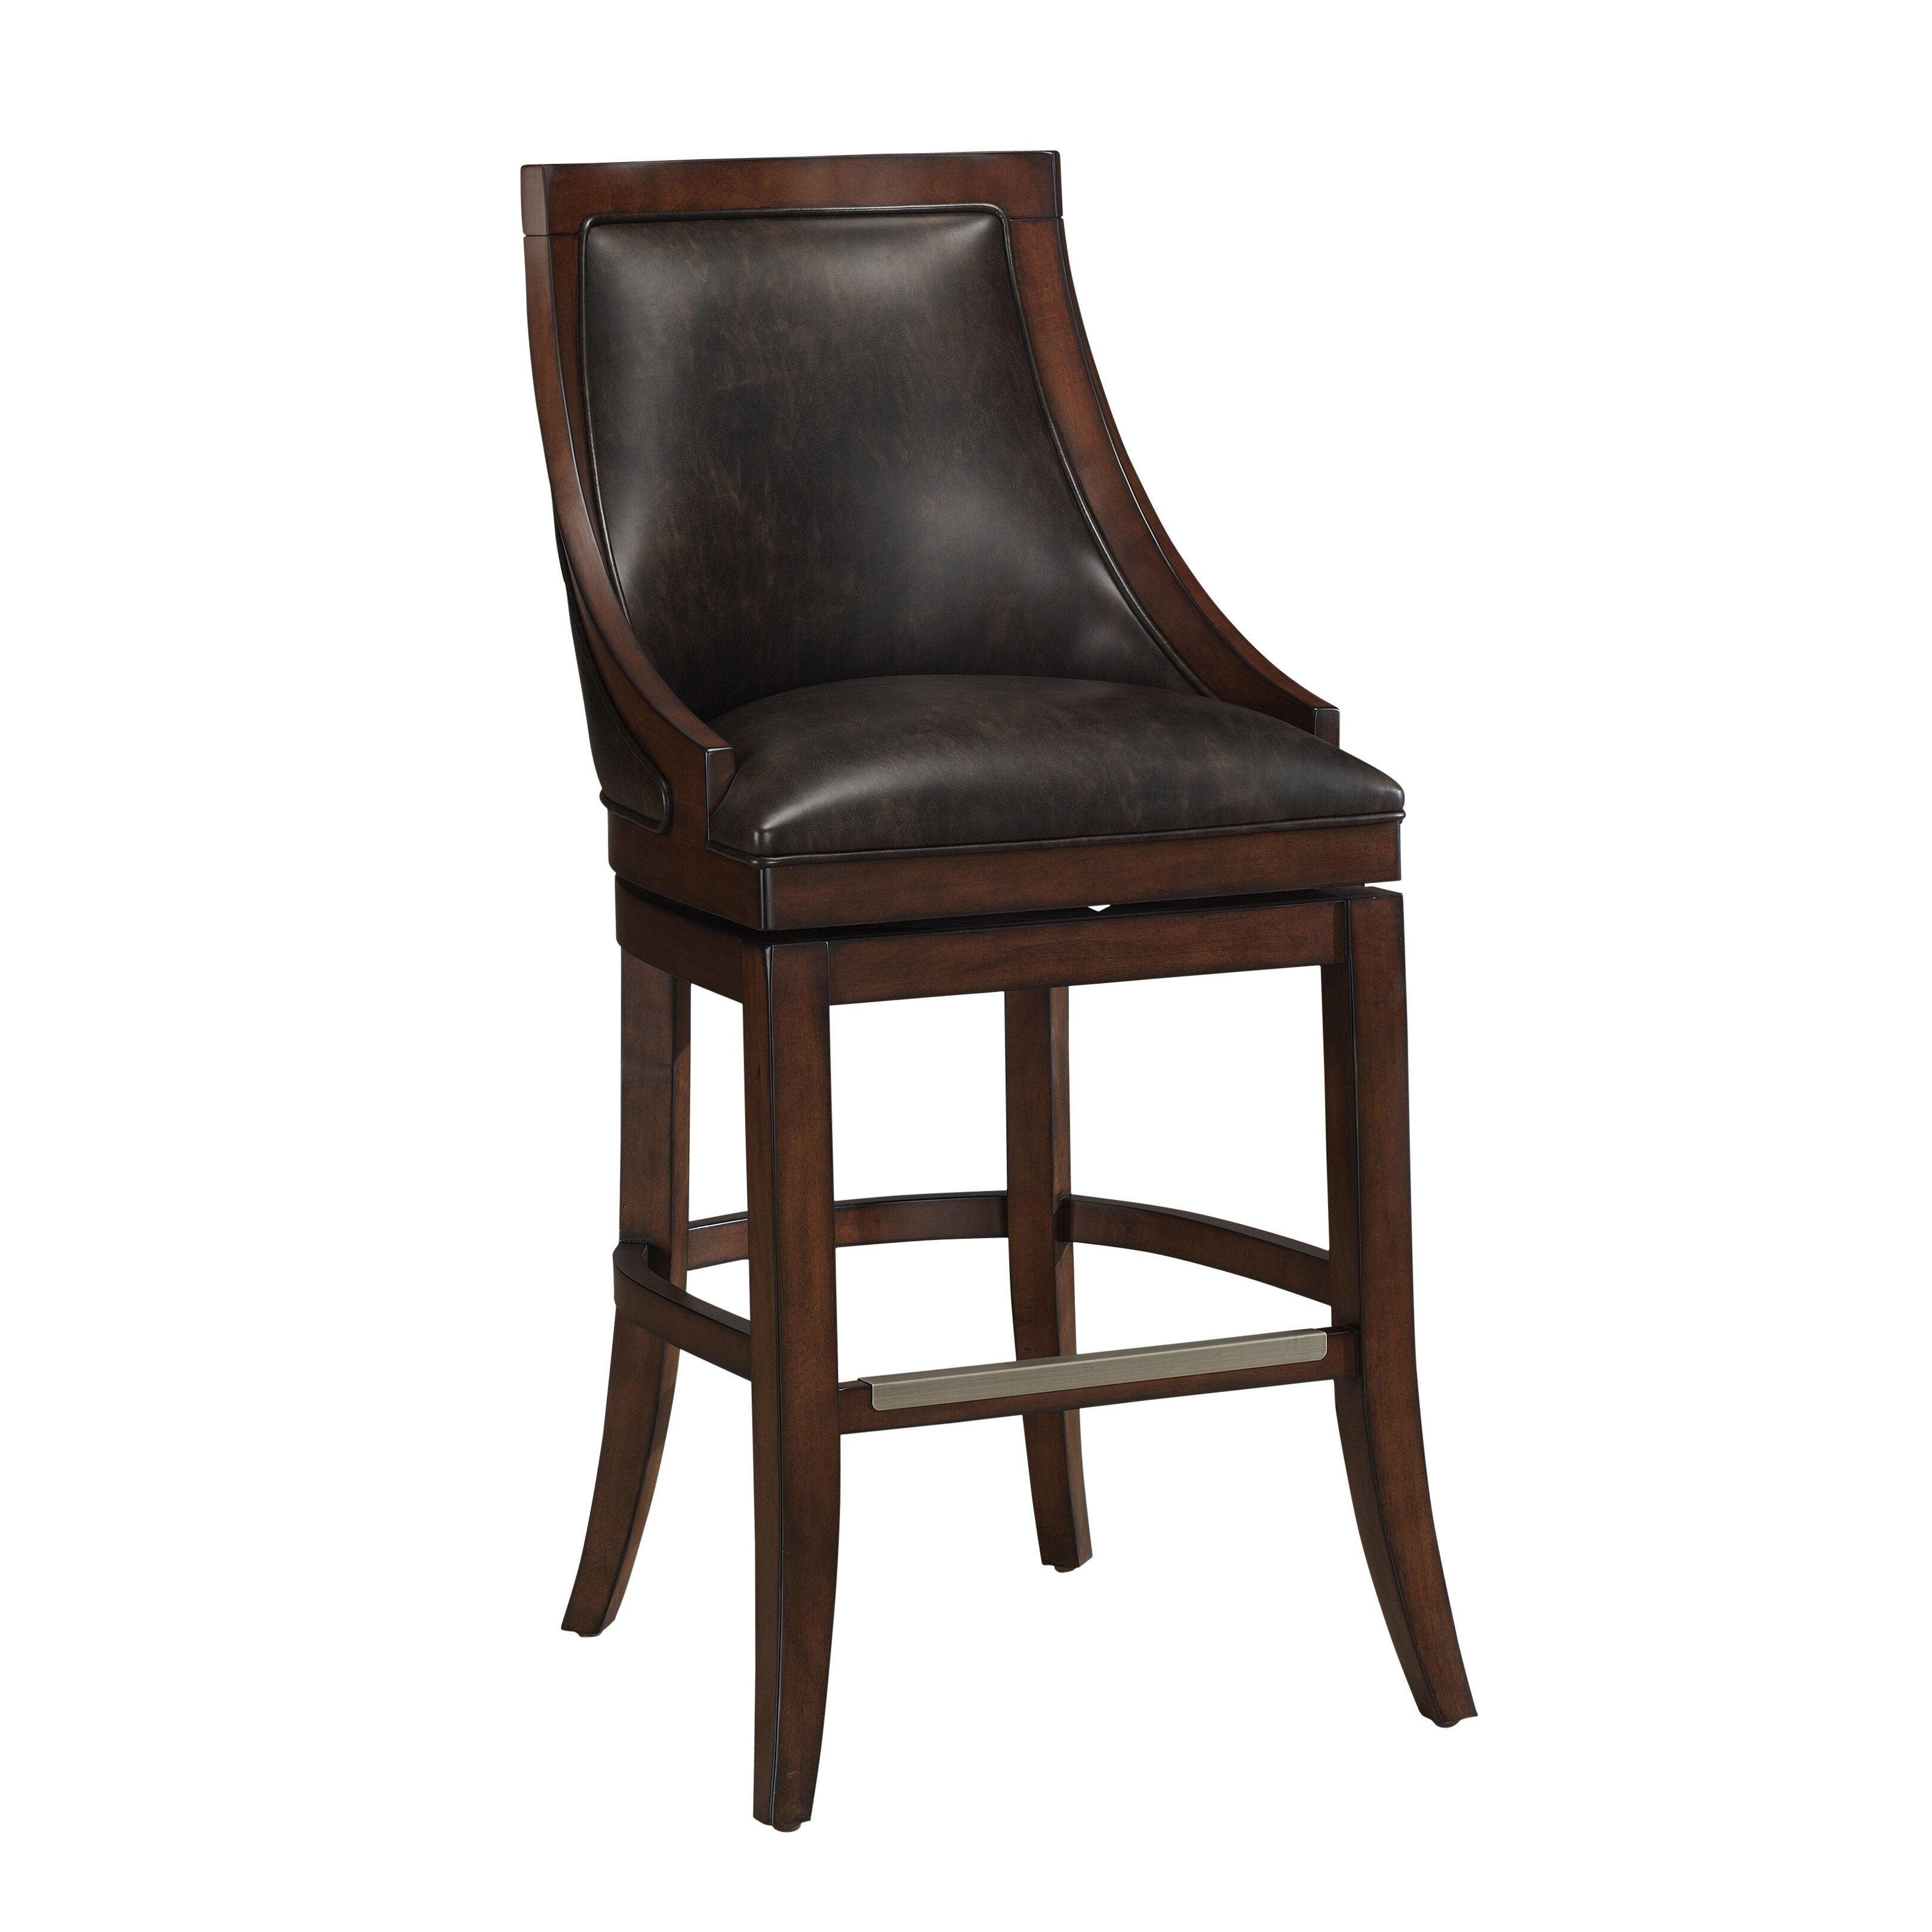 American Heritage Galileo 26quot Swivel Bar Stool amp Reviews  : American Heritage Galileo 26 Swivel Bar Stool 111136 from www.wayfair.com size 3241 x 3241 jpeg 724kB